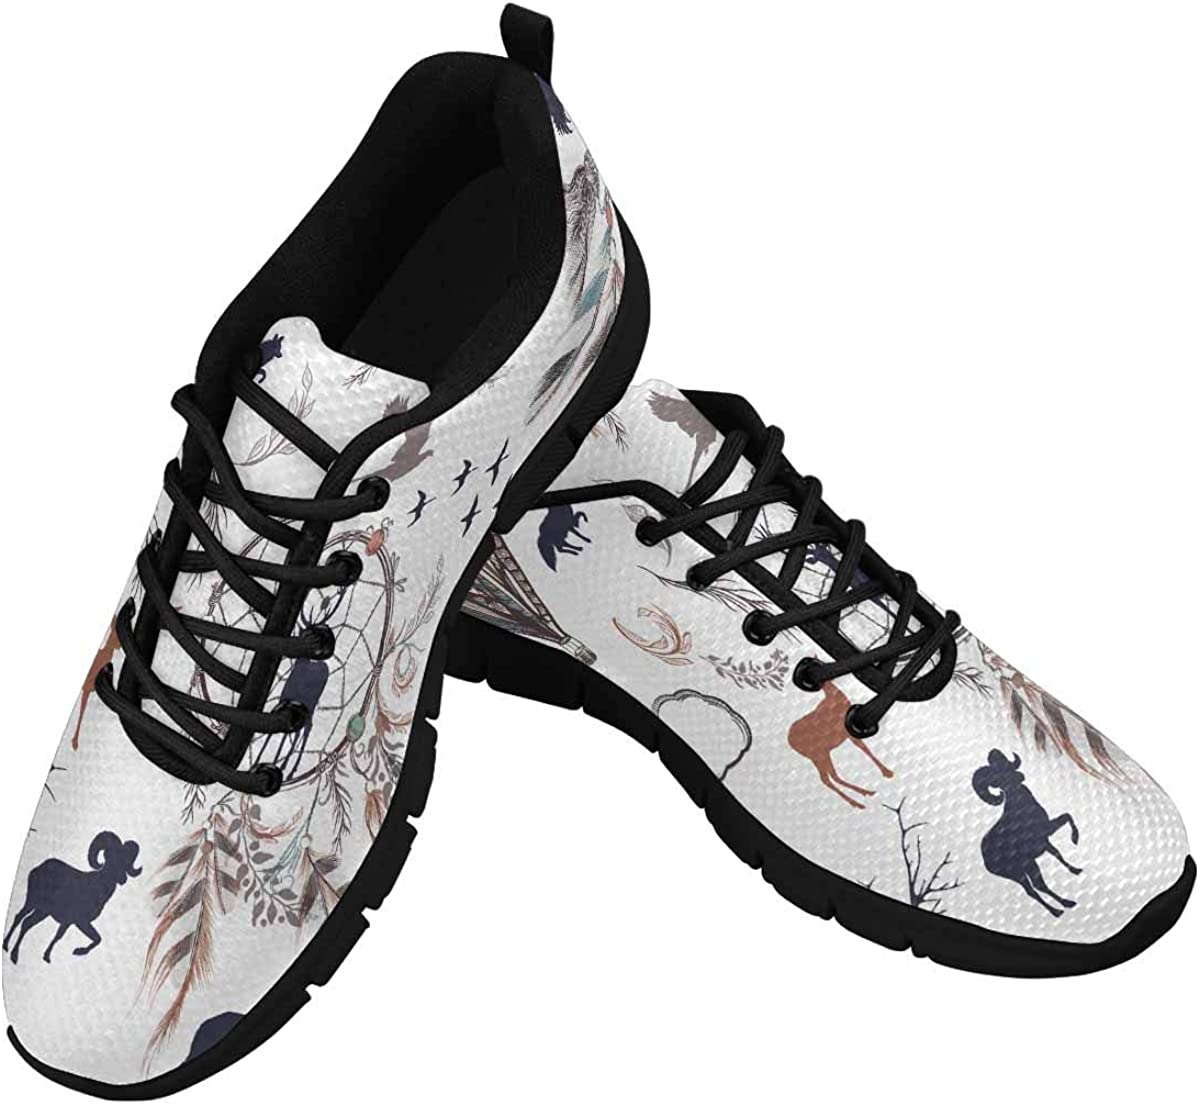 INTERESTPRINT Dream Catchers with Feathers Lightweight Mesh Breathable Sneakers for Women